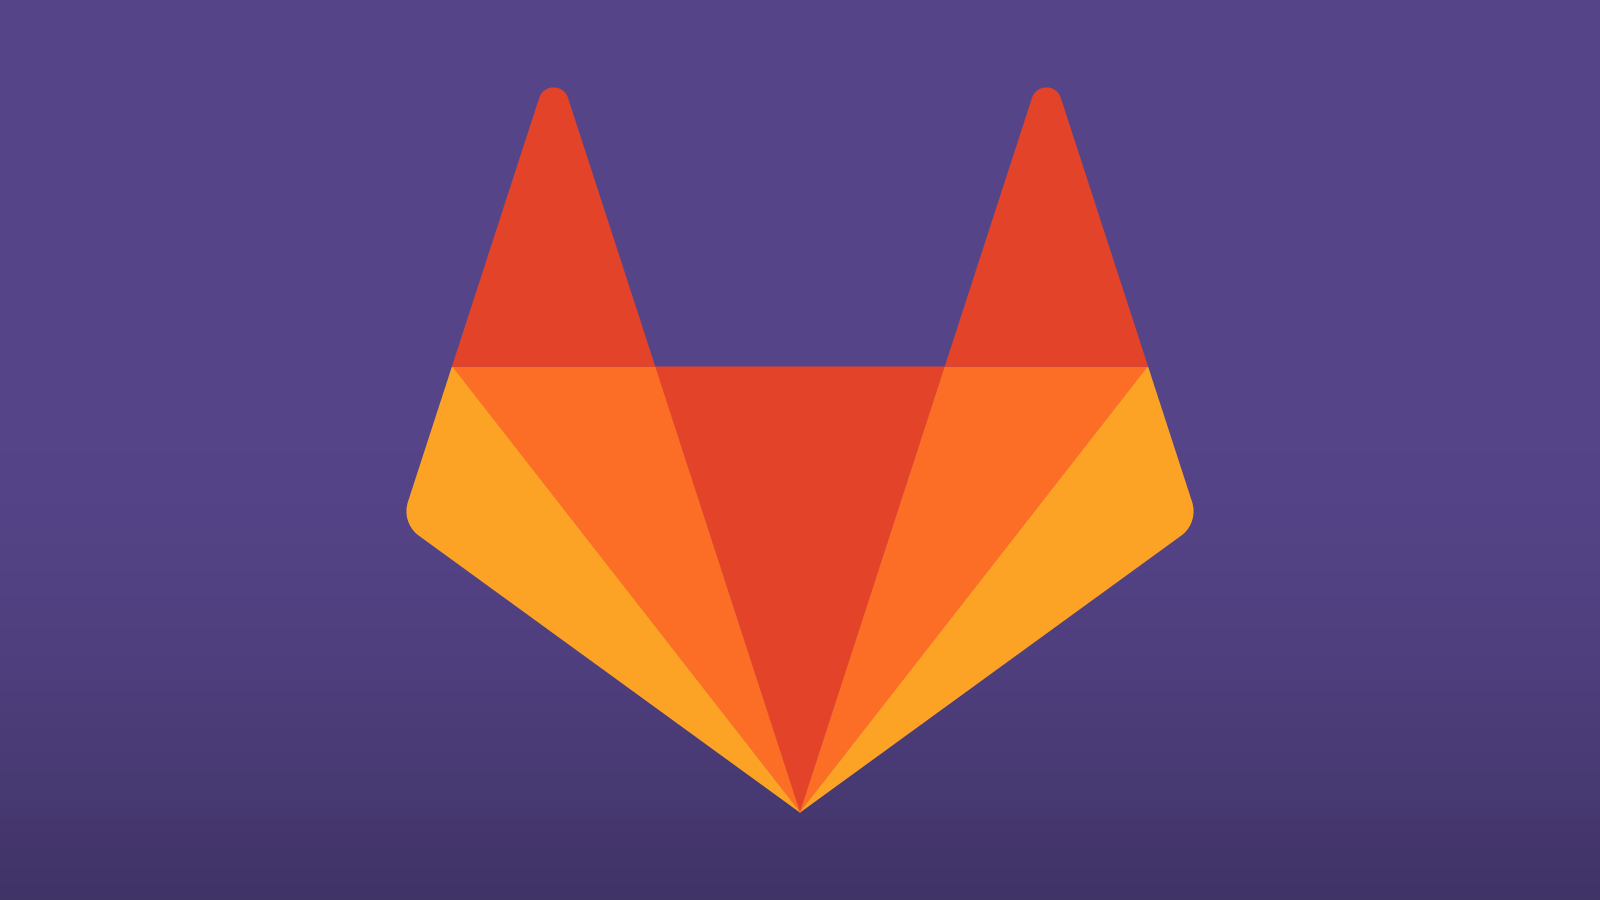 Pictures/gitlab-adds-support-for-github.png